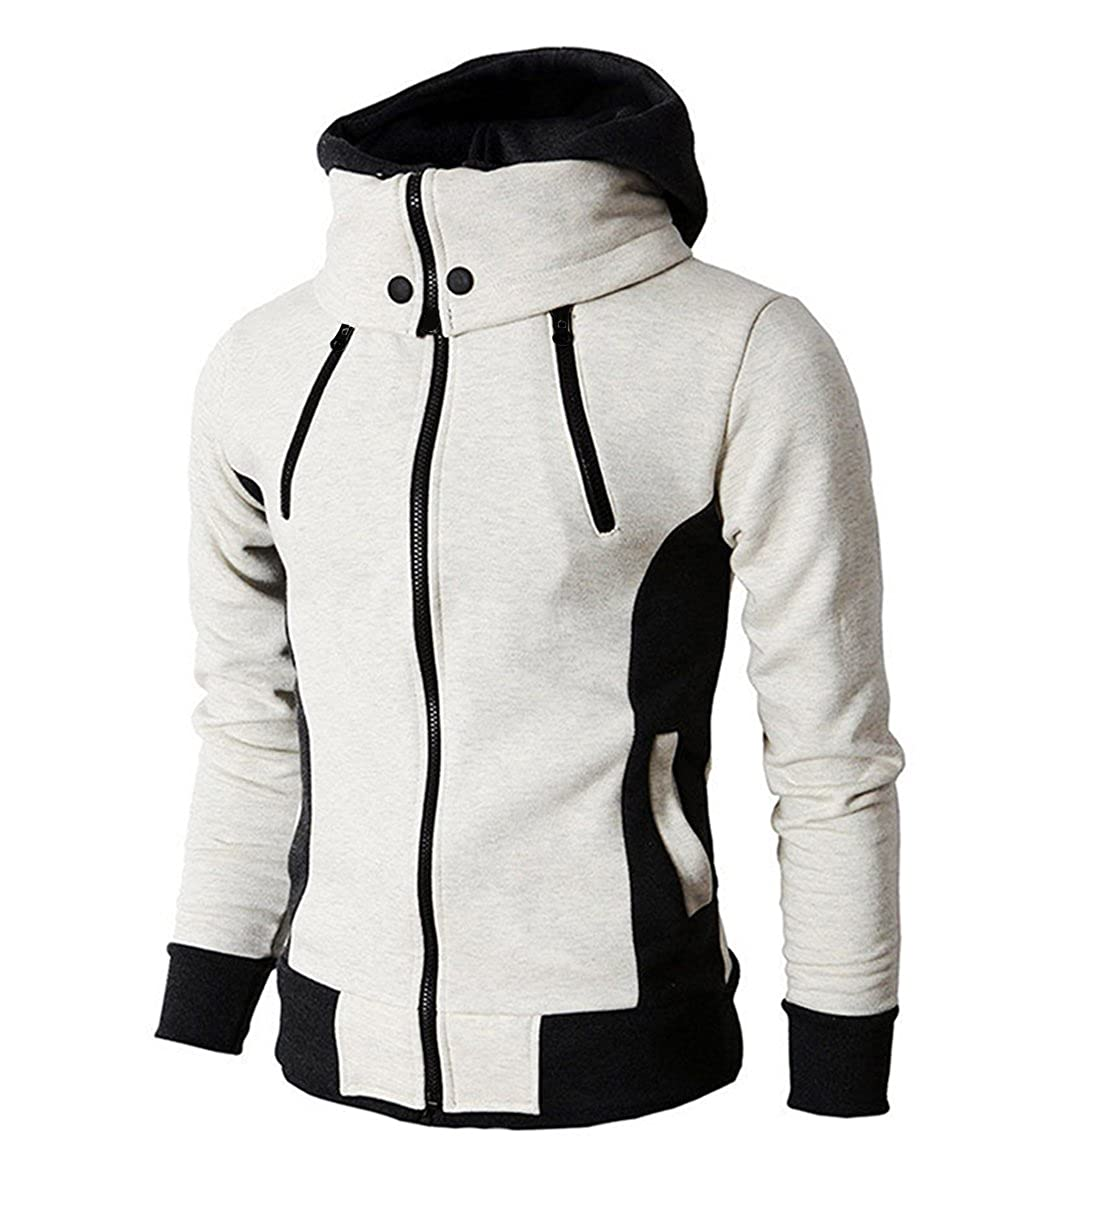 LOCALMODE Men's Double Zipper Hooded Jacket Turtleneck Fleece Hoodie Coat WY94